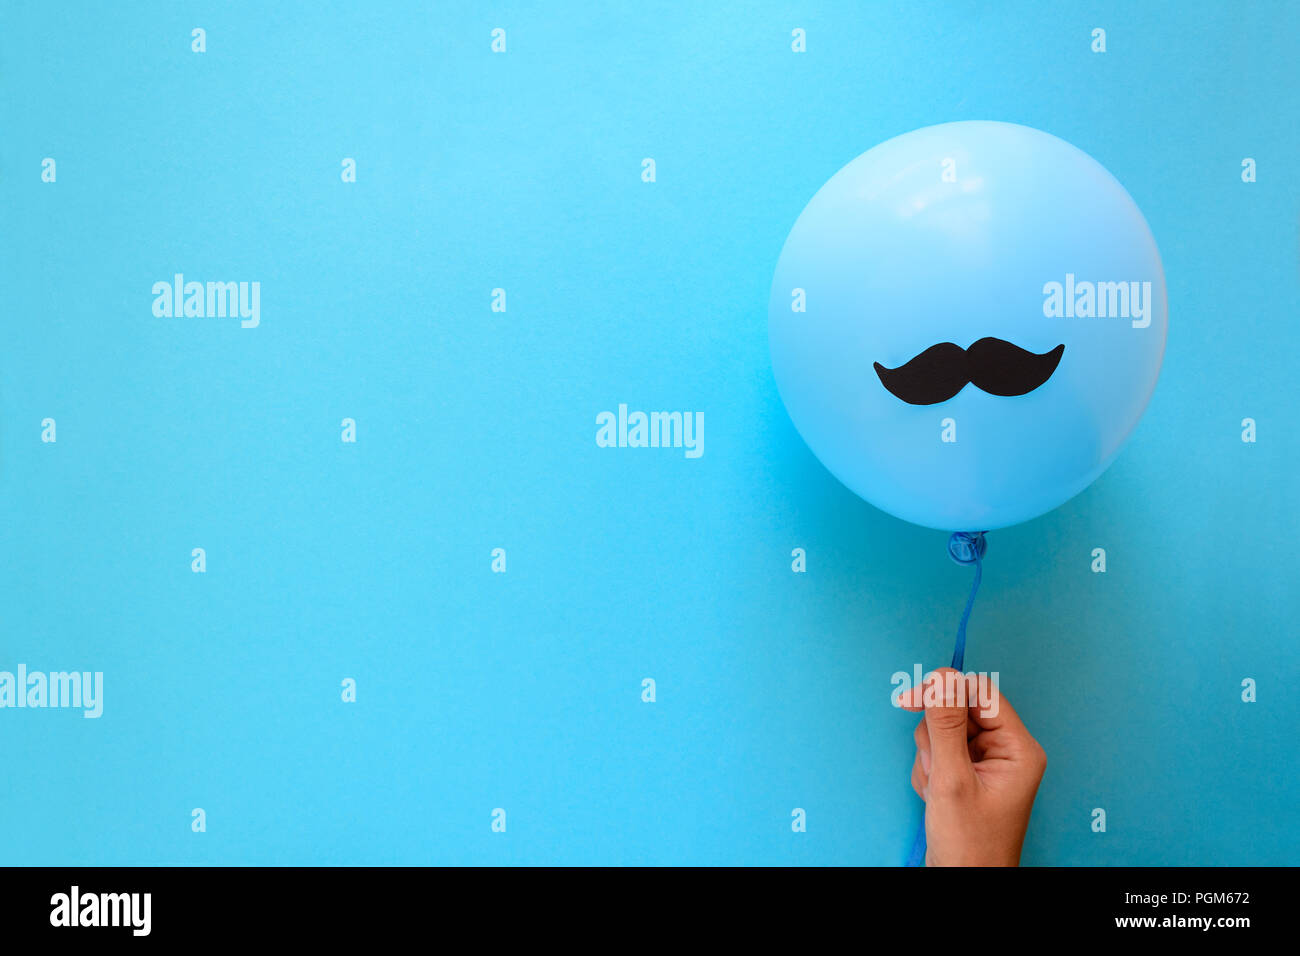 Hand holding blue balloon with a paper mustache on blue paper background. Cut out style. Movember - Stock Image